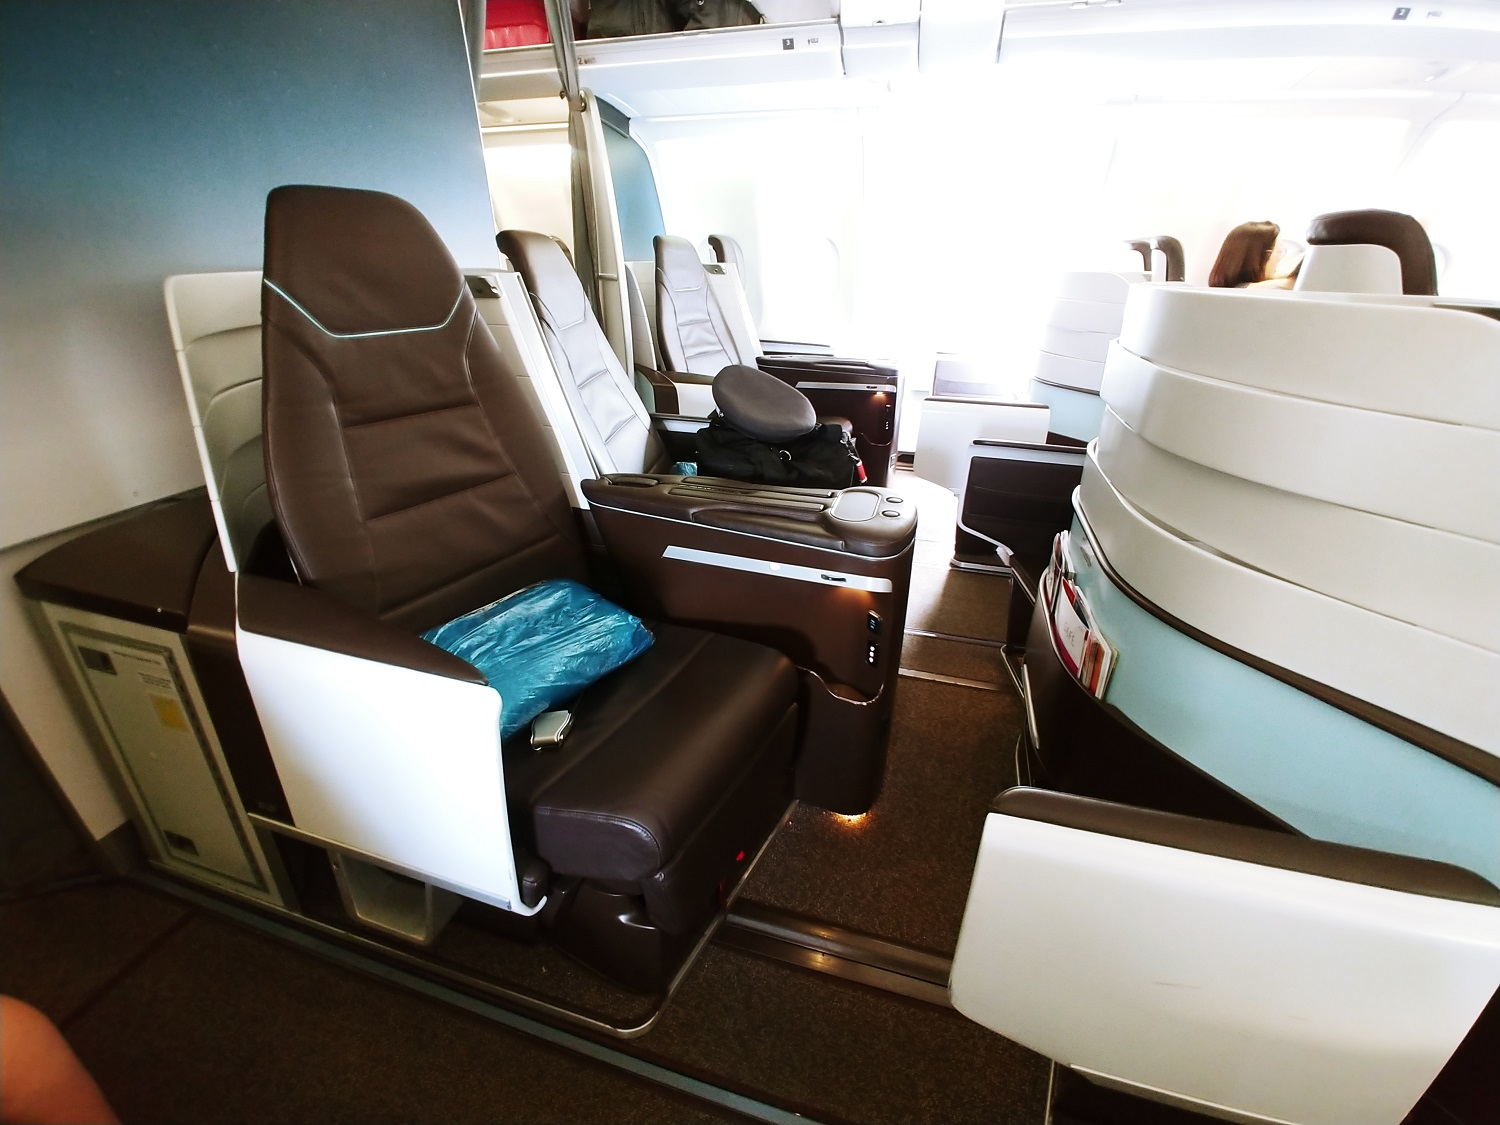 When do airline miles expire and how do you keep airline miles alive?